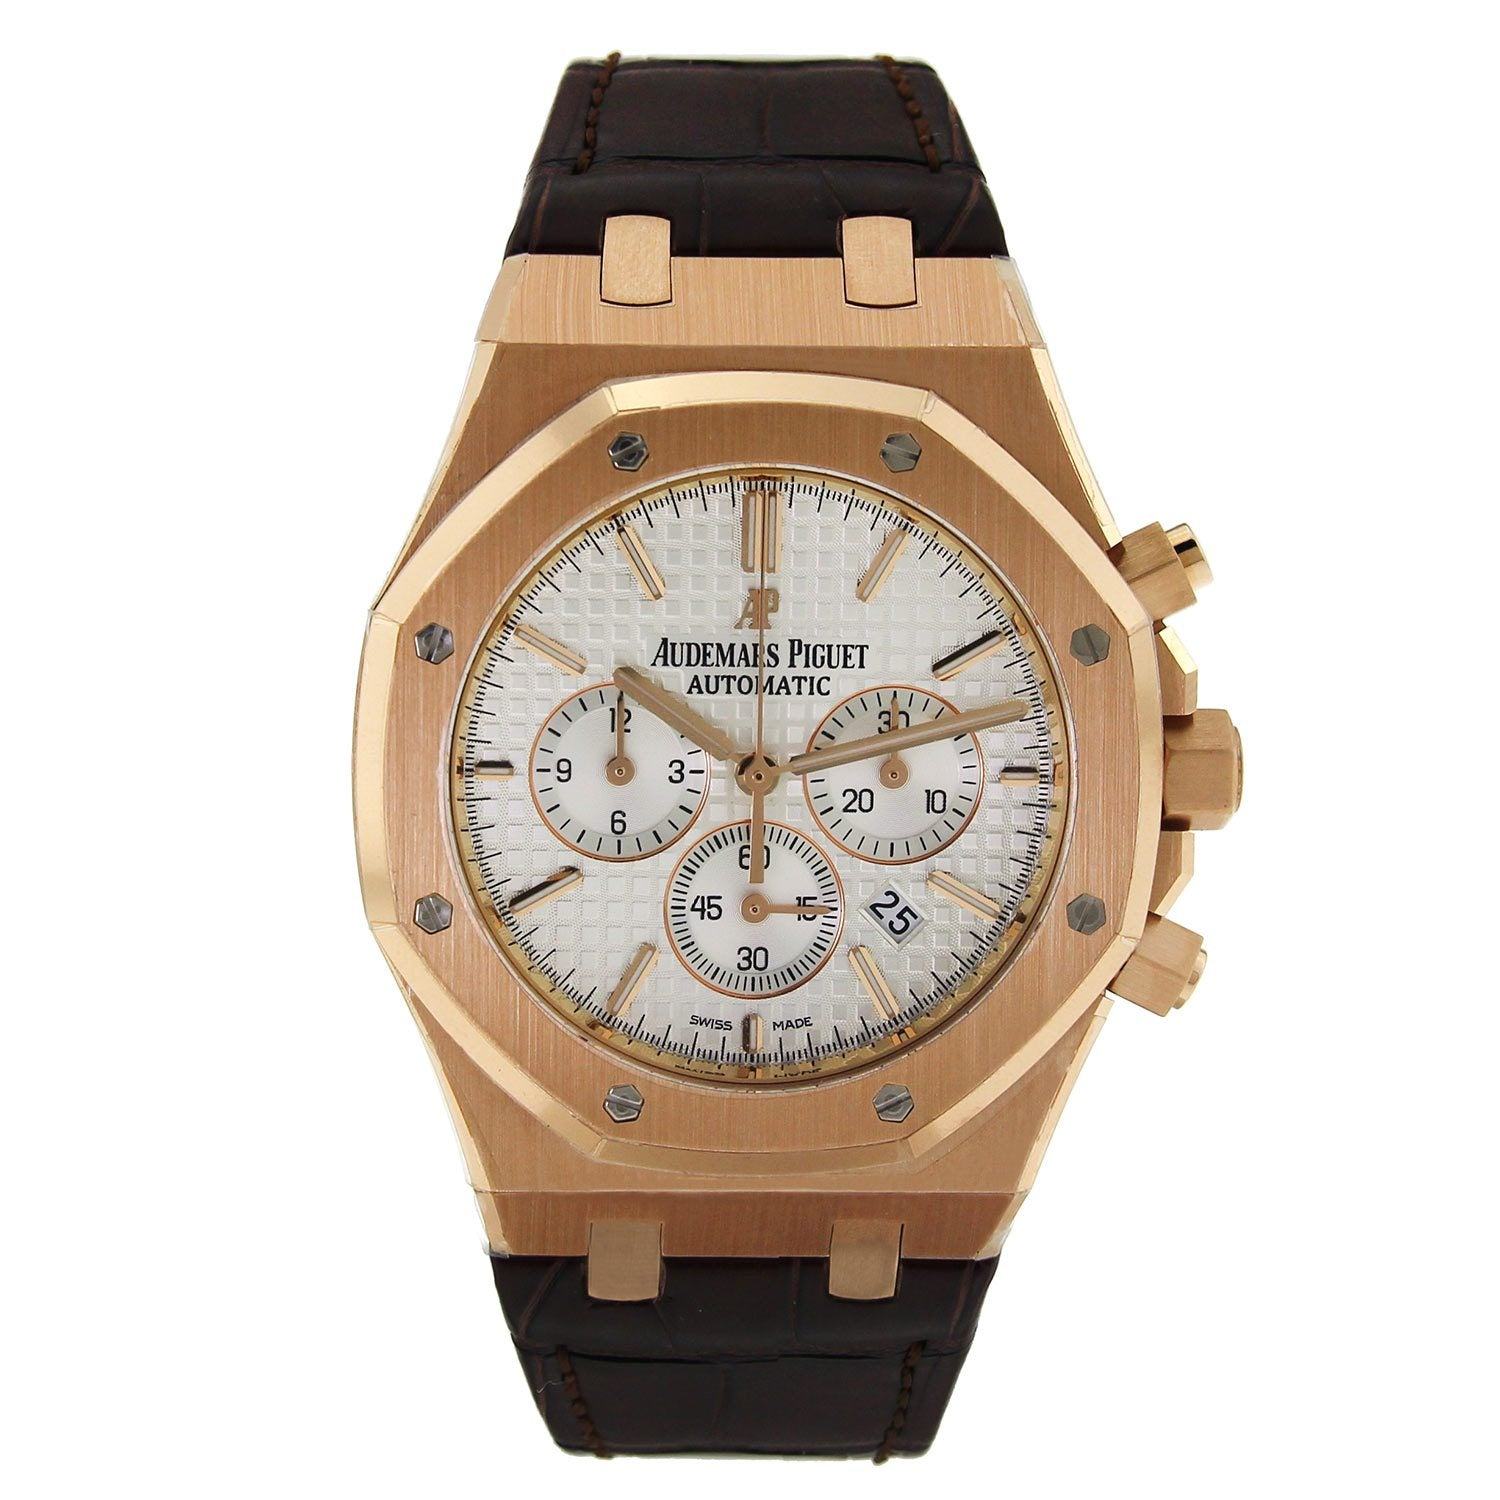 Audemars Piguet Royal Oak Chronograph with Brown Leather Strap 26320OR.OO.D088CR.01